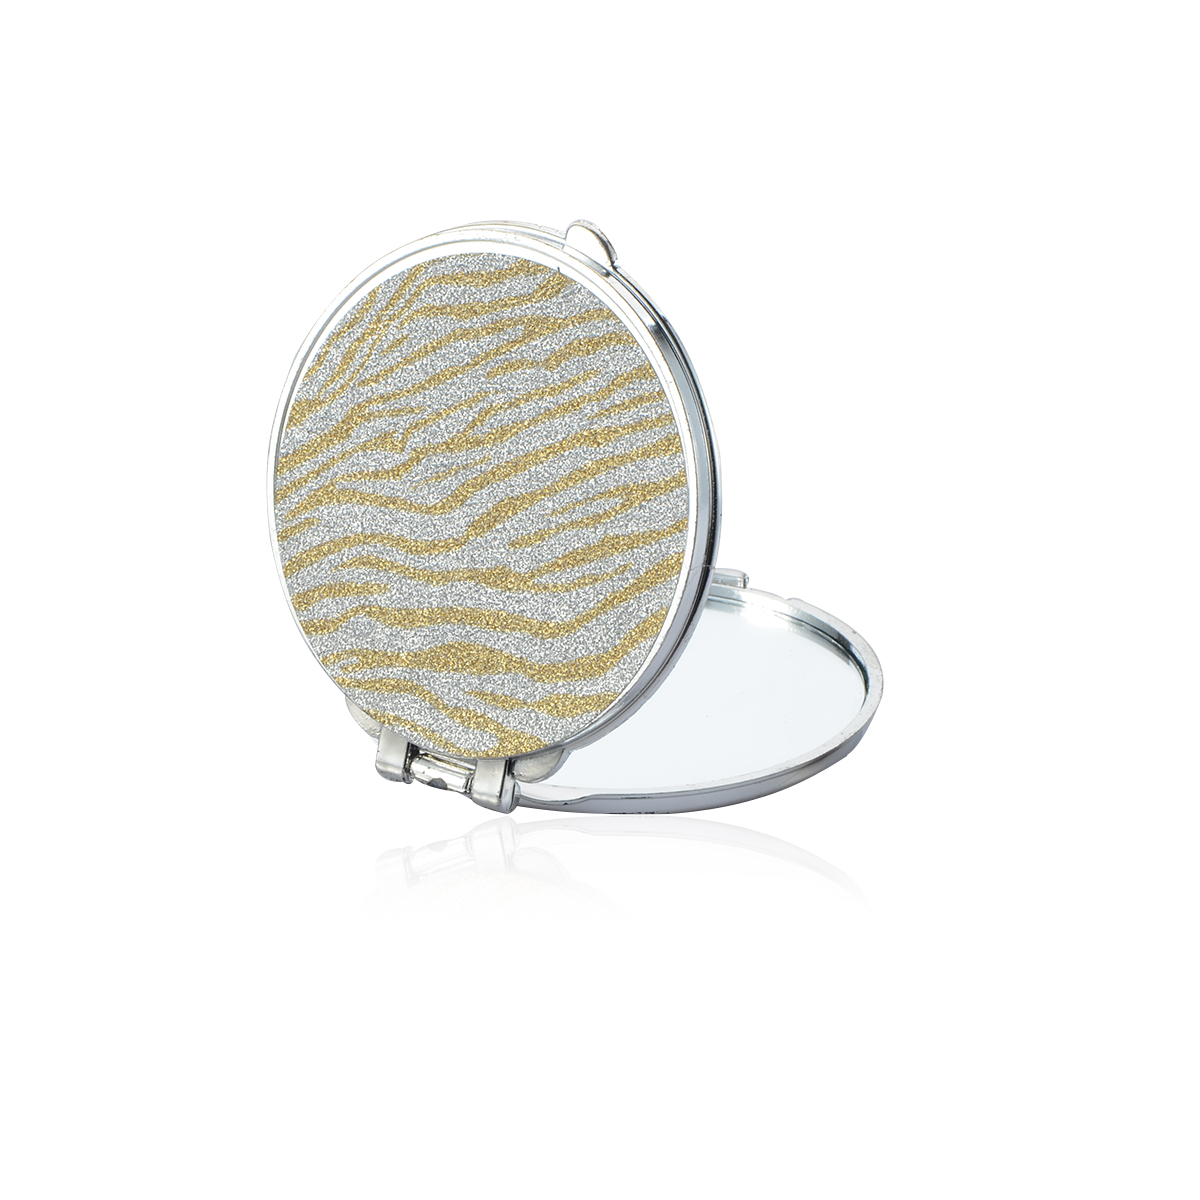 Portable Mini Makeup Mirror Compact Pocket Mirror Double Sided Folding Cosmetic Mirror Female Gifts With flowing sparkling sand in Makeup Mirrors from Beauty Health